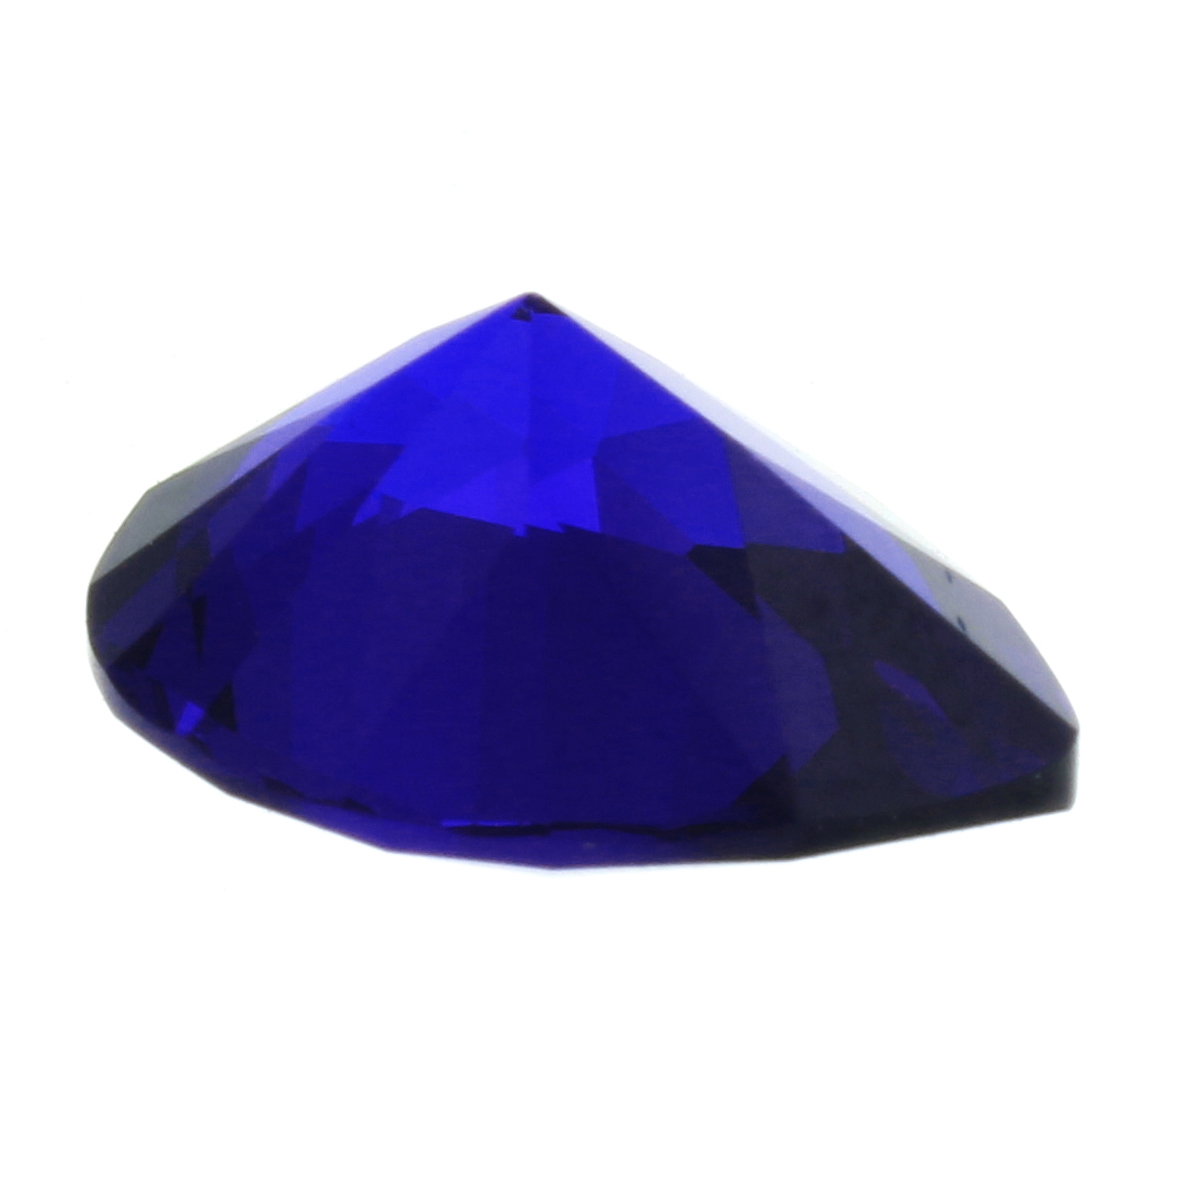 maicos lab by are is cc licensed sapphire grown article sapphires artificial under o what